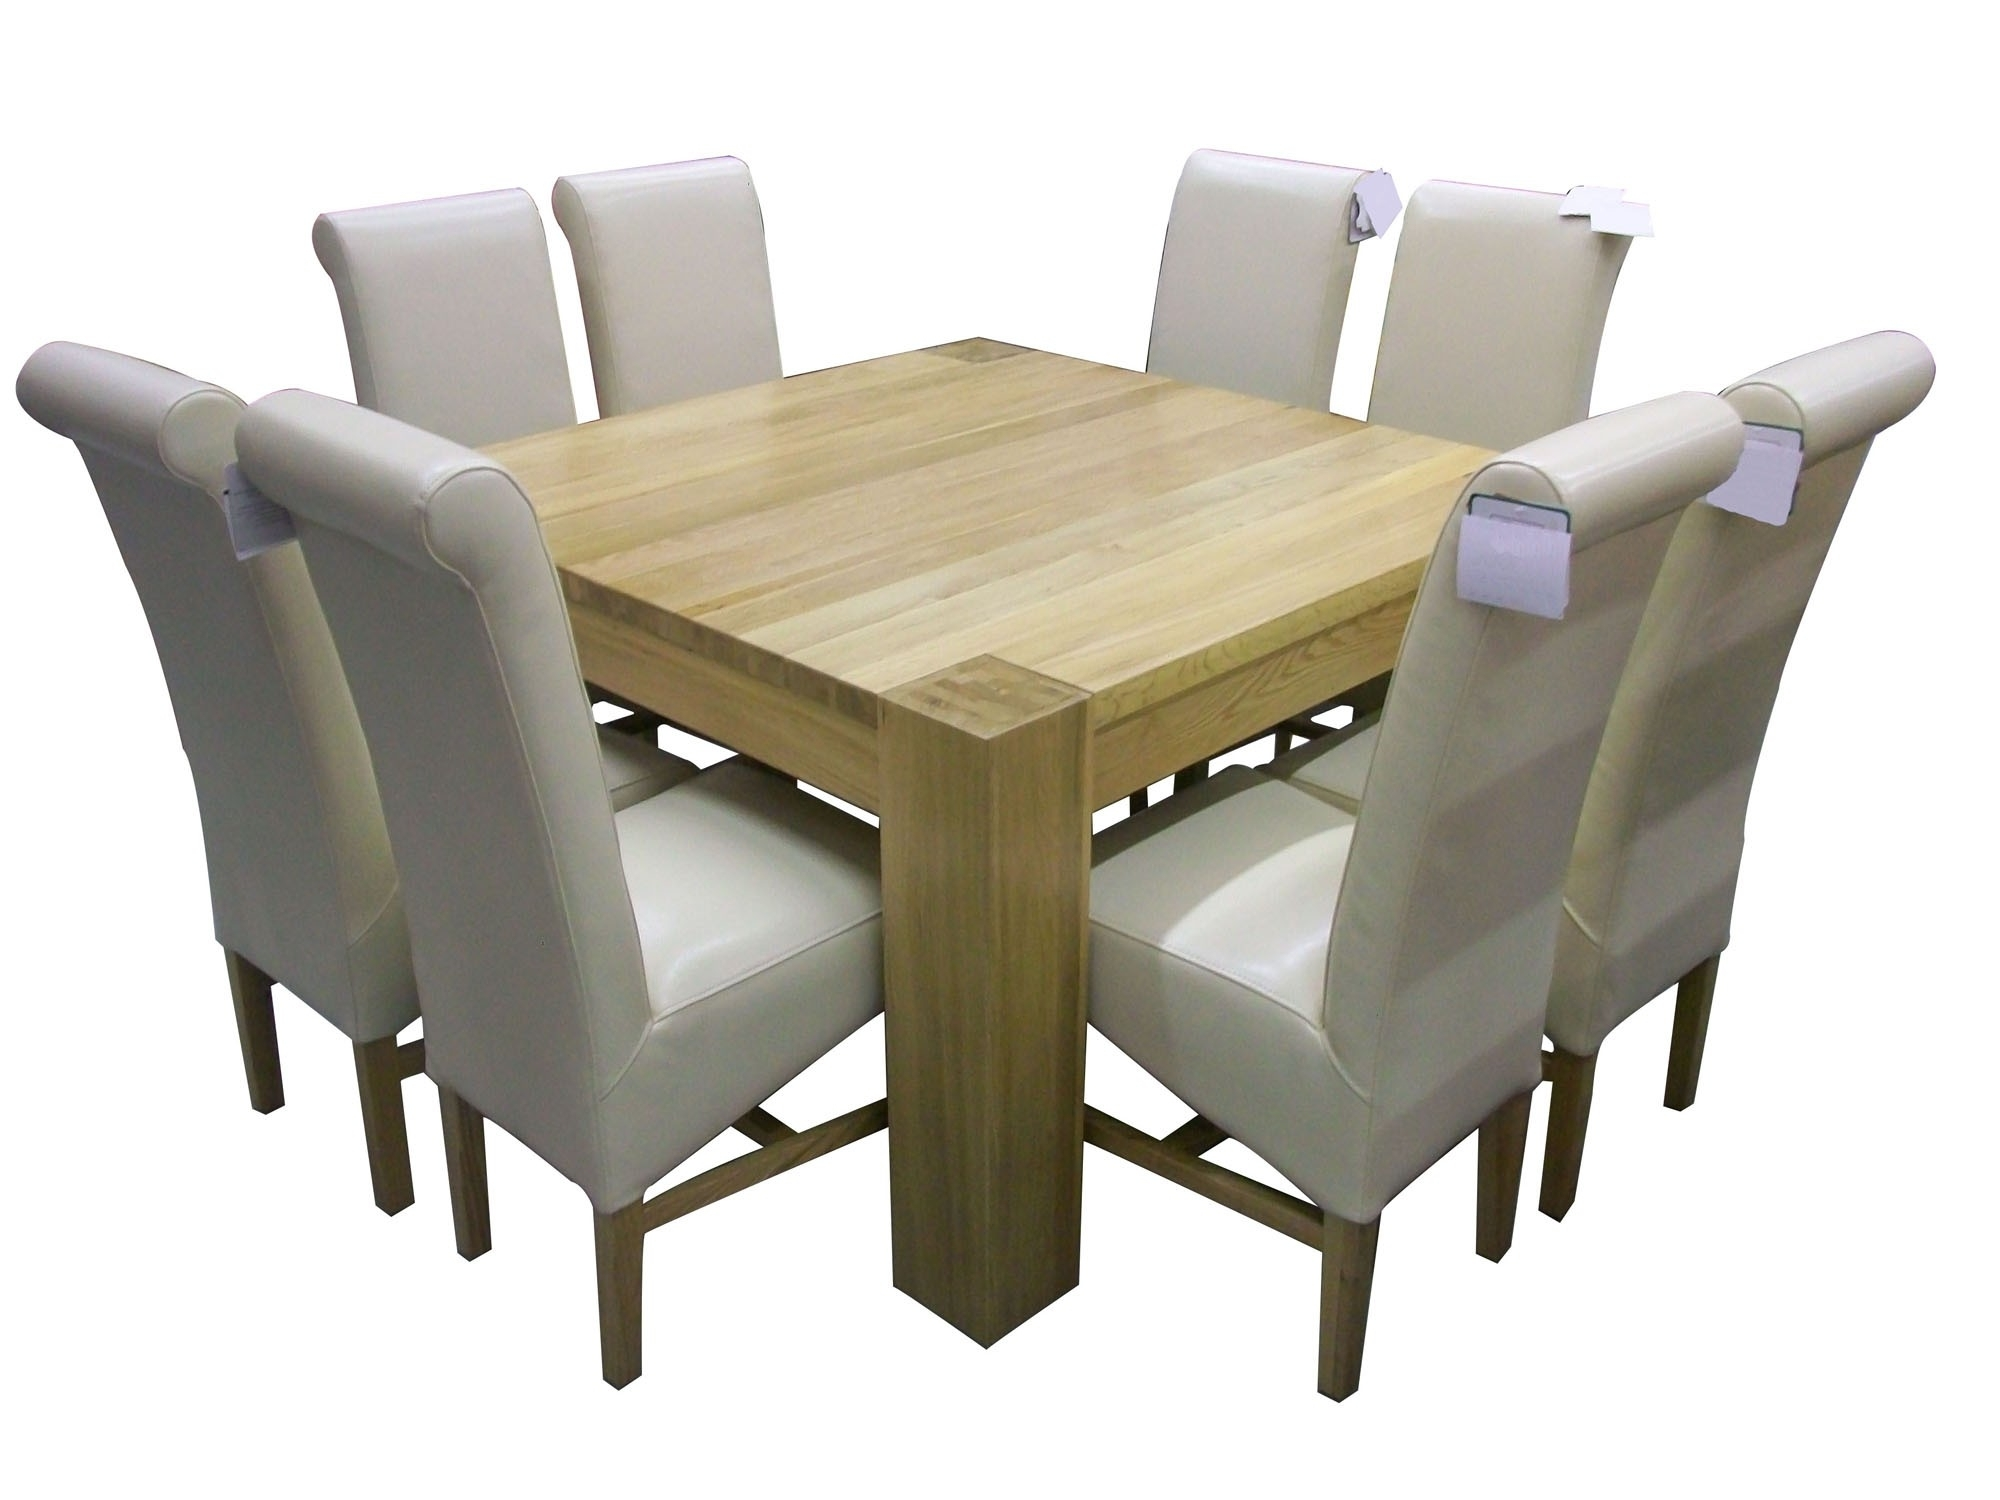 Oak Dining Tables And 8 Chairs With Regard To Most Recent Solid Oak Dining Room Table And 8 Chairs Inspirational White Square (View 17 of 25)